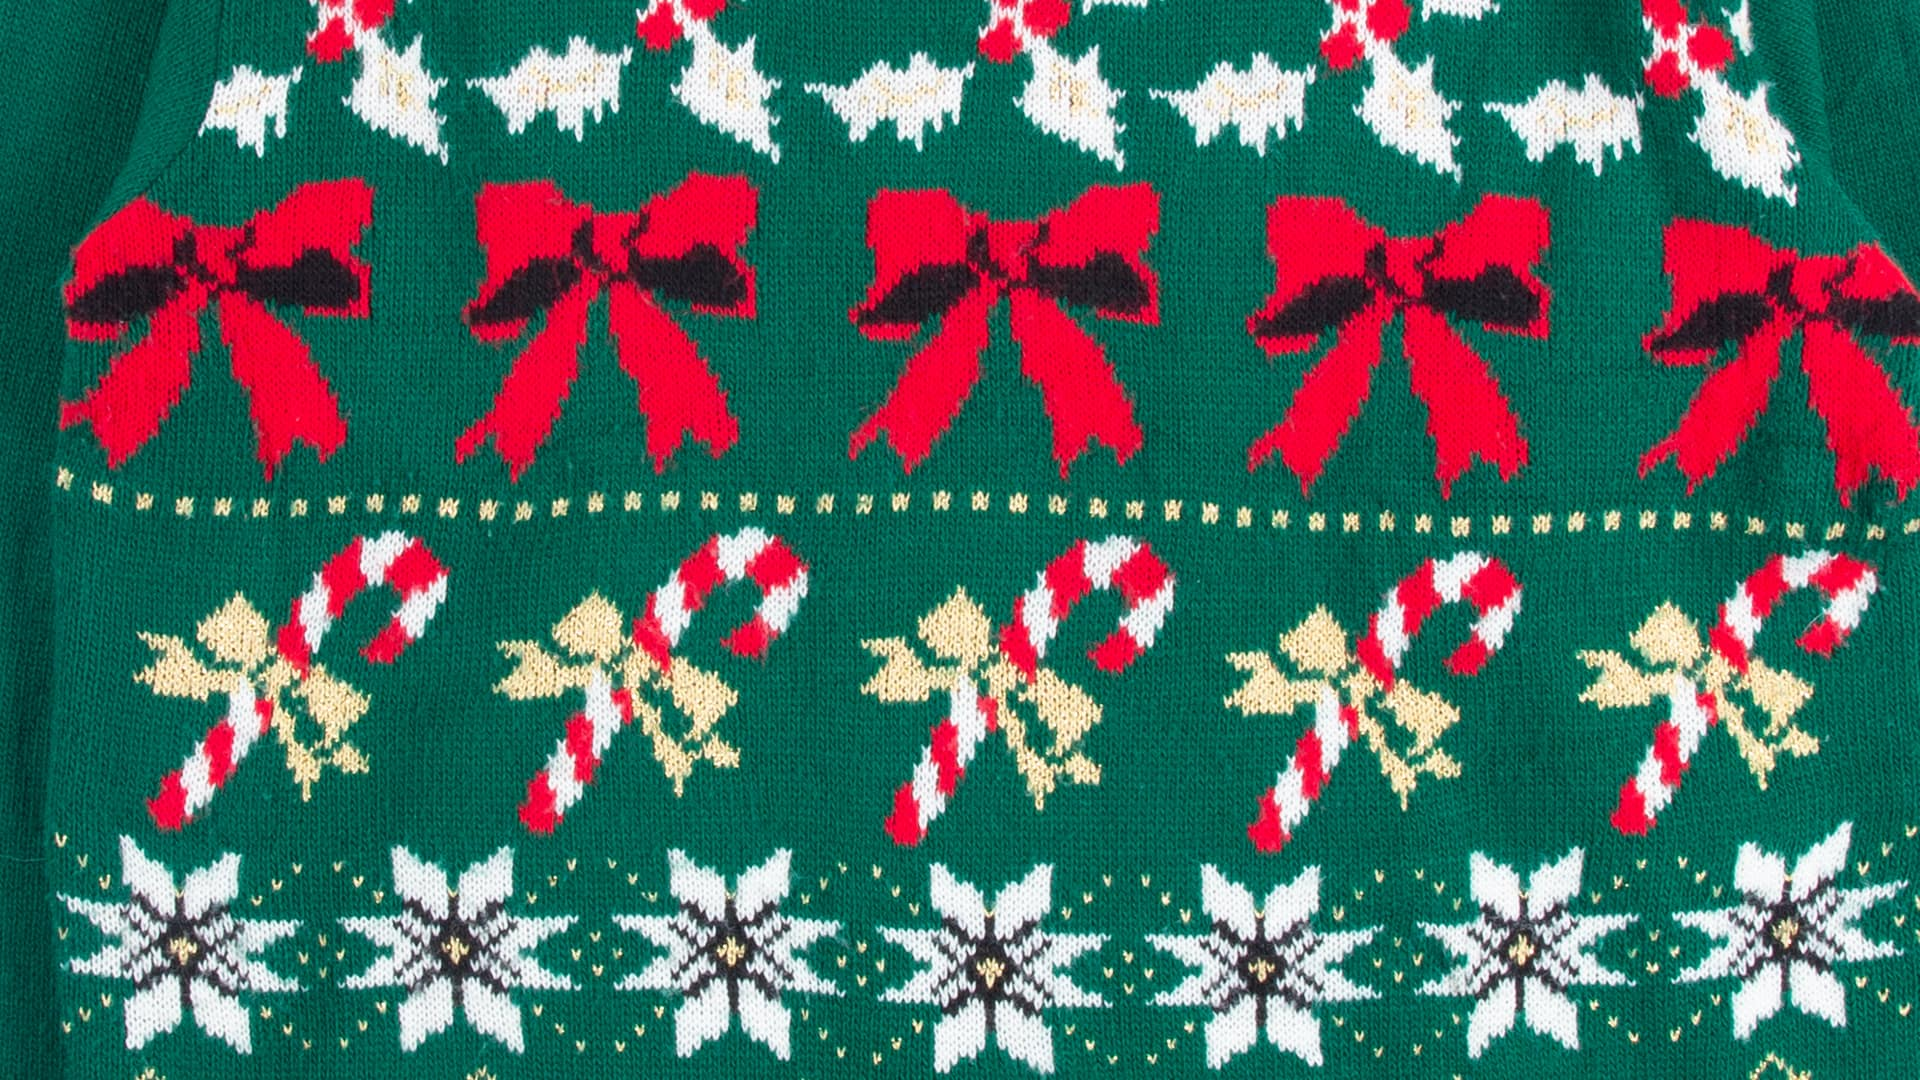 Ugly Christmas sweater featuring rows of bows and candy canes on a dark green background.